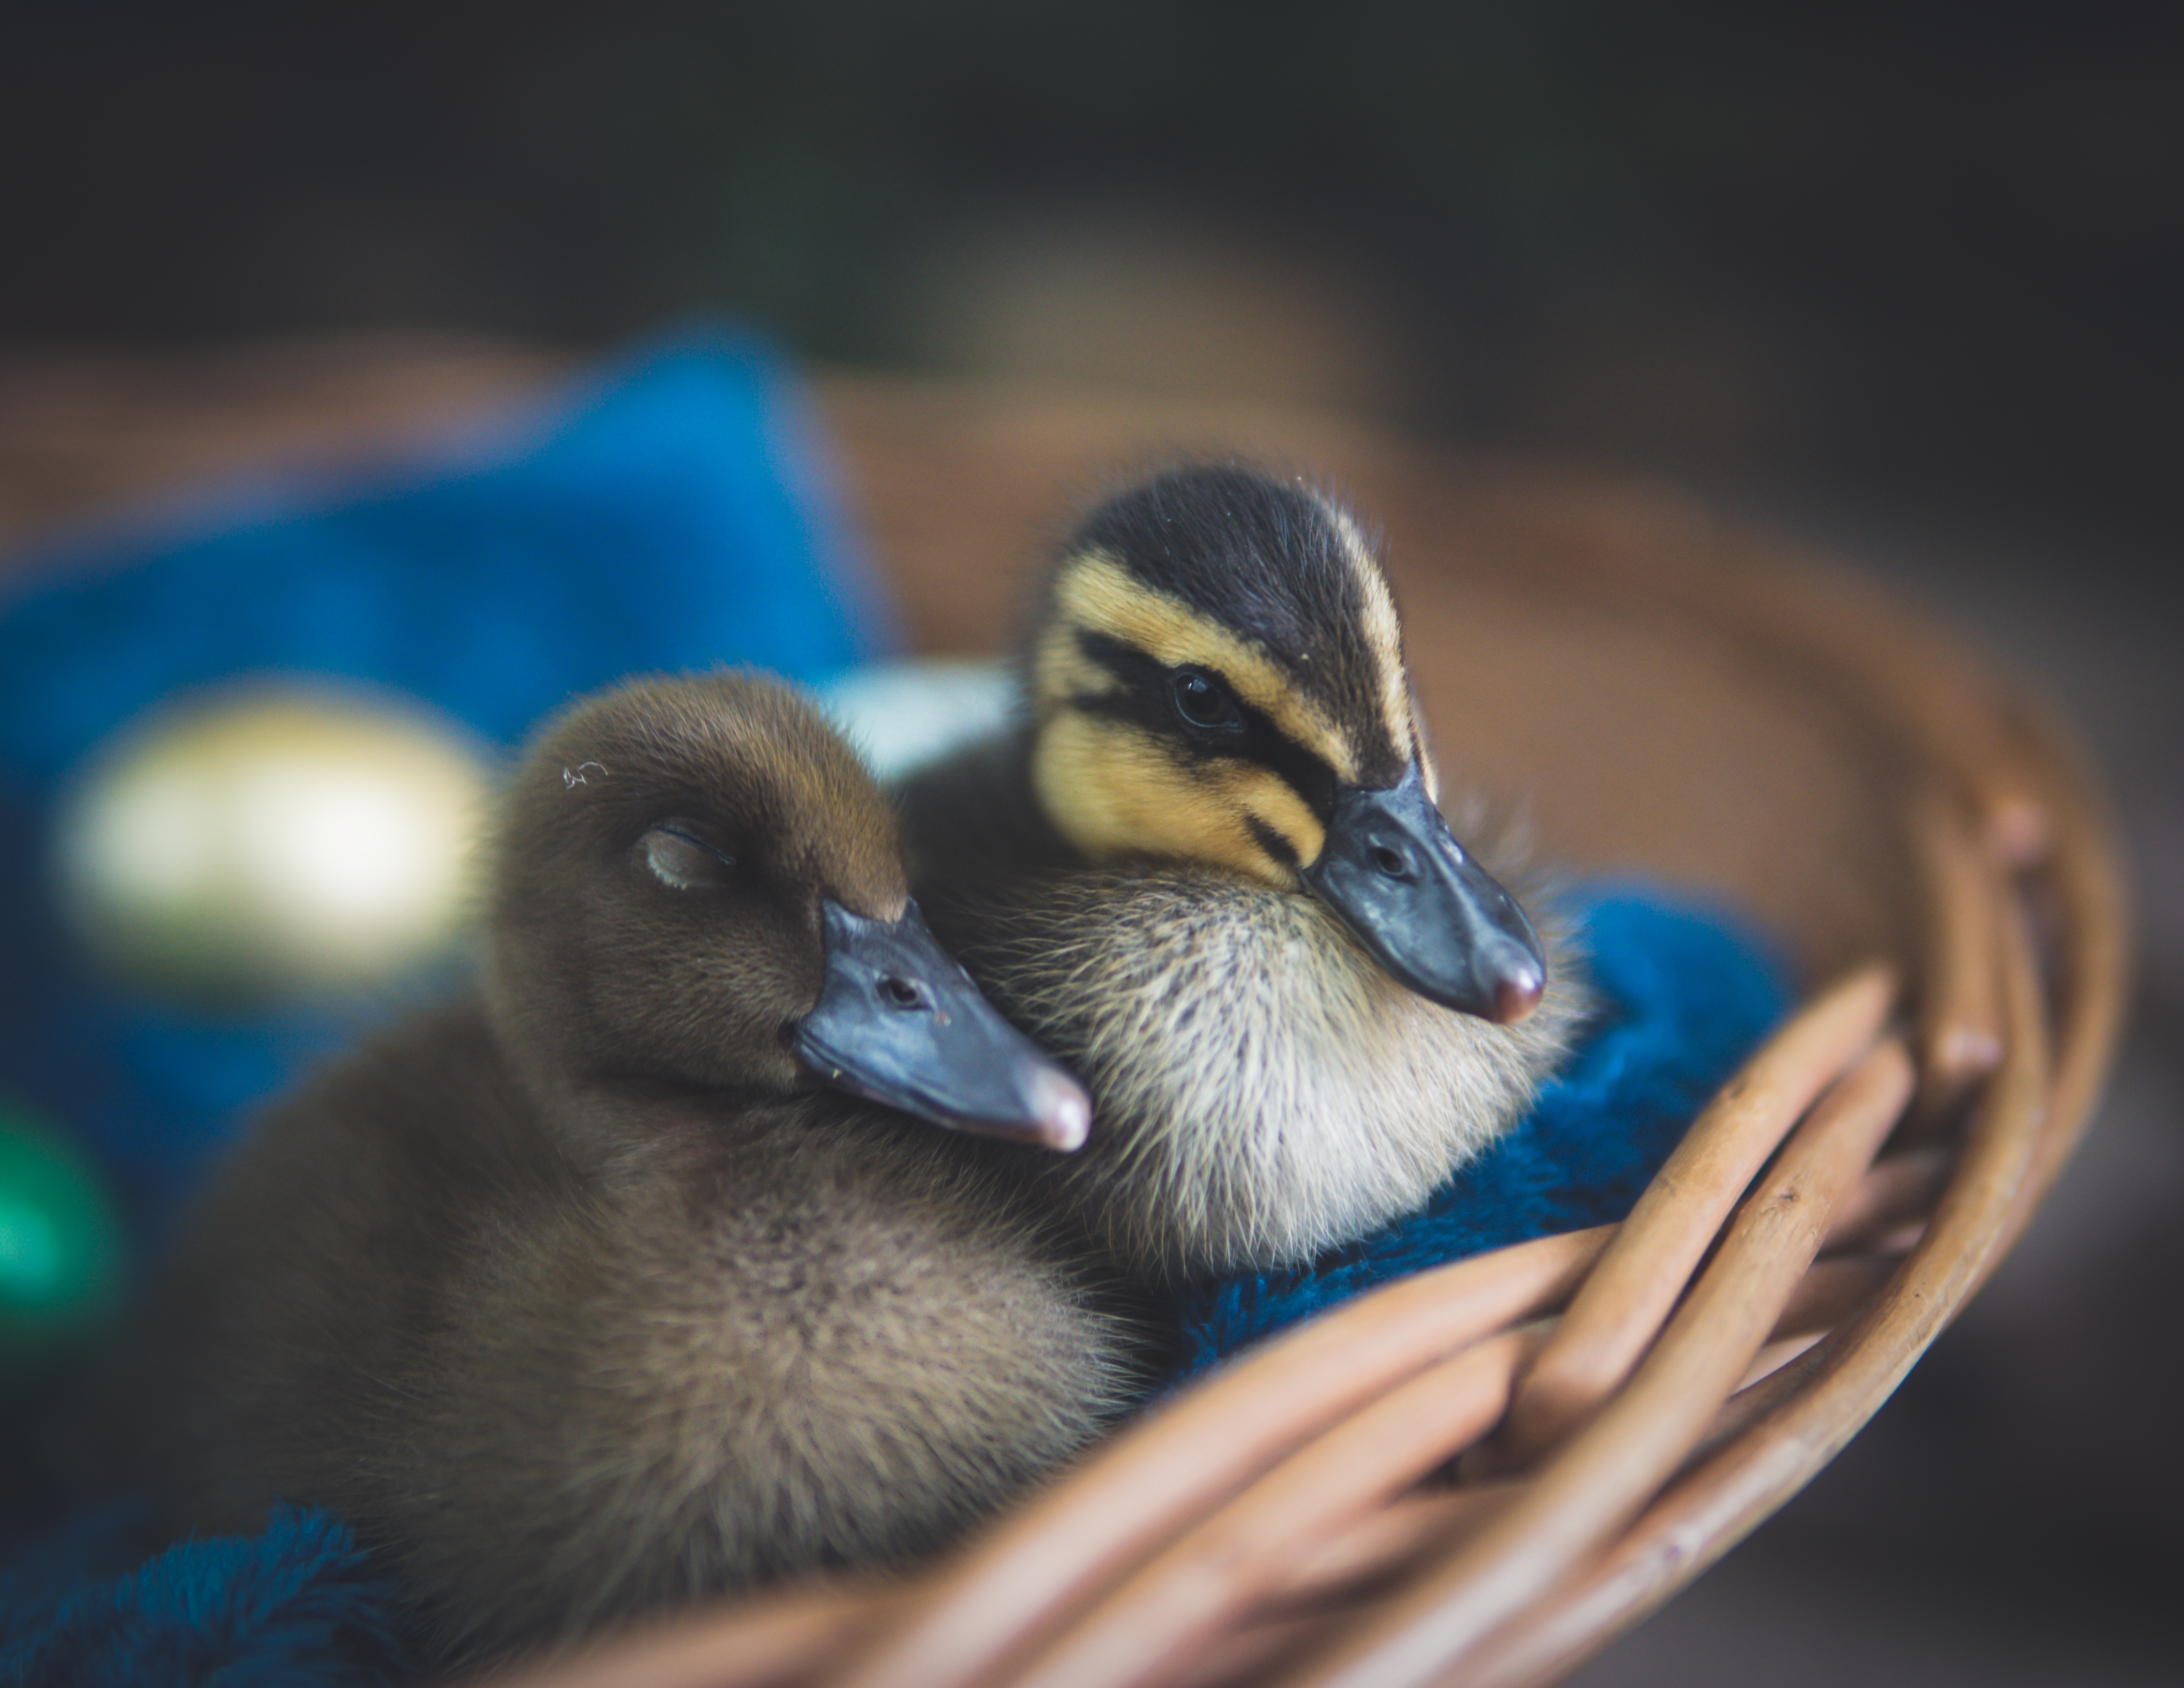 Close-Up Photography of Ducks